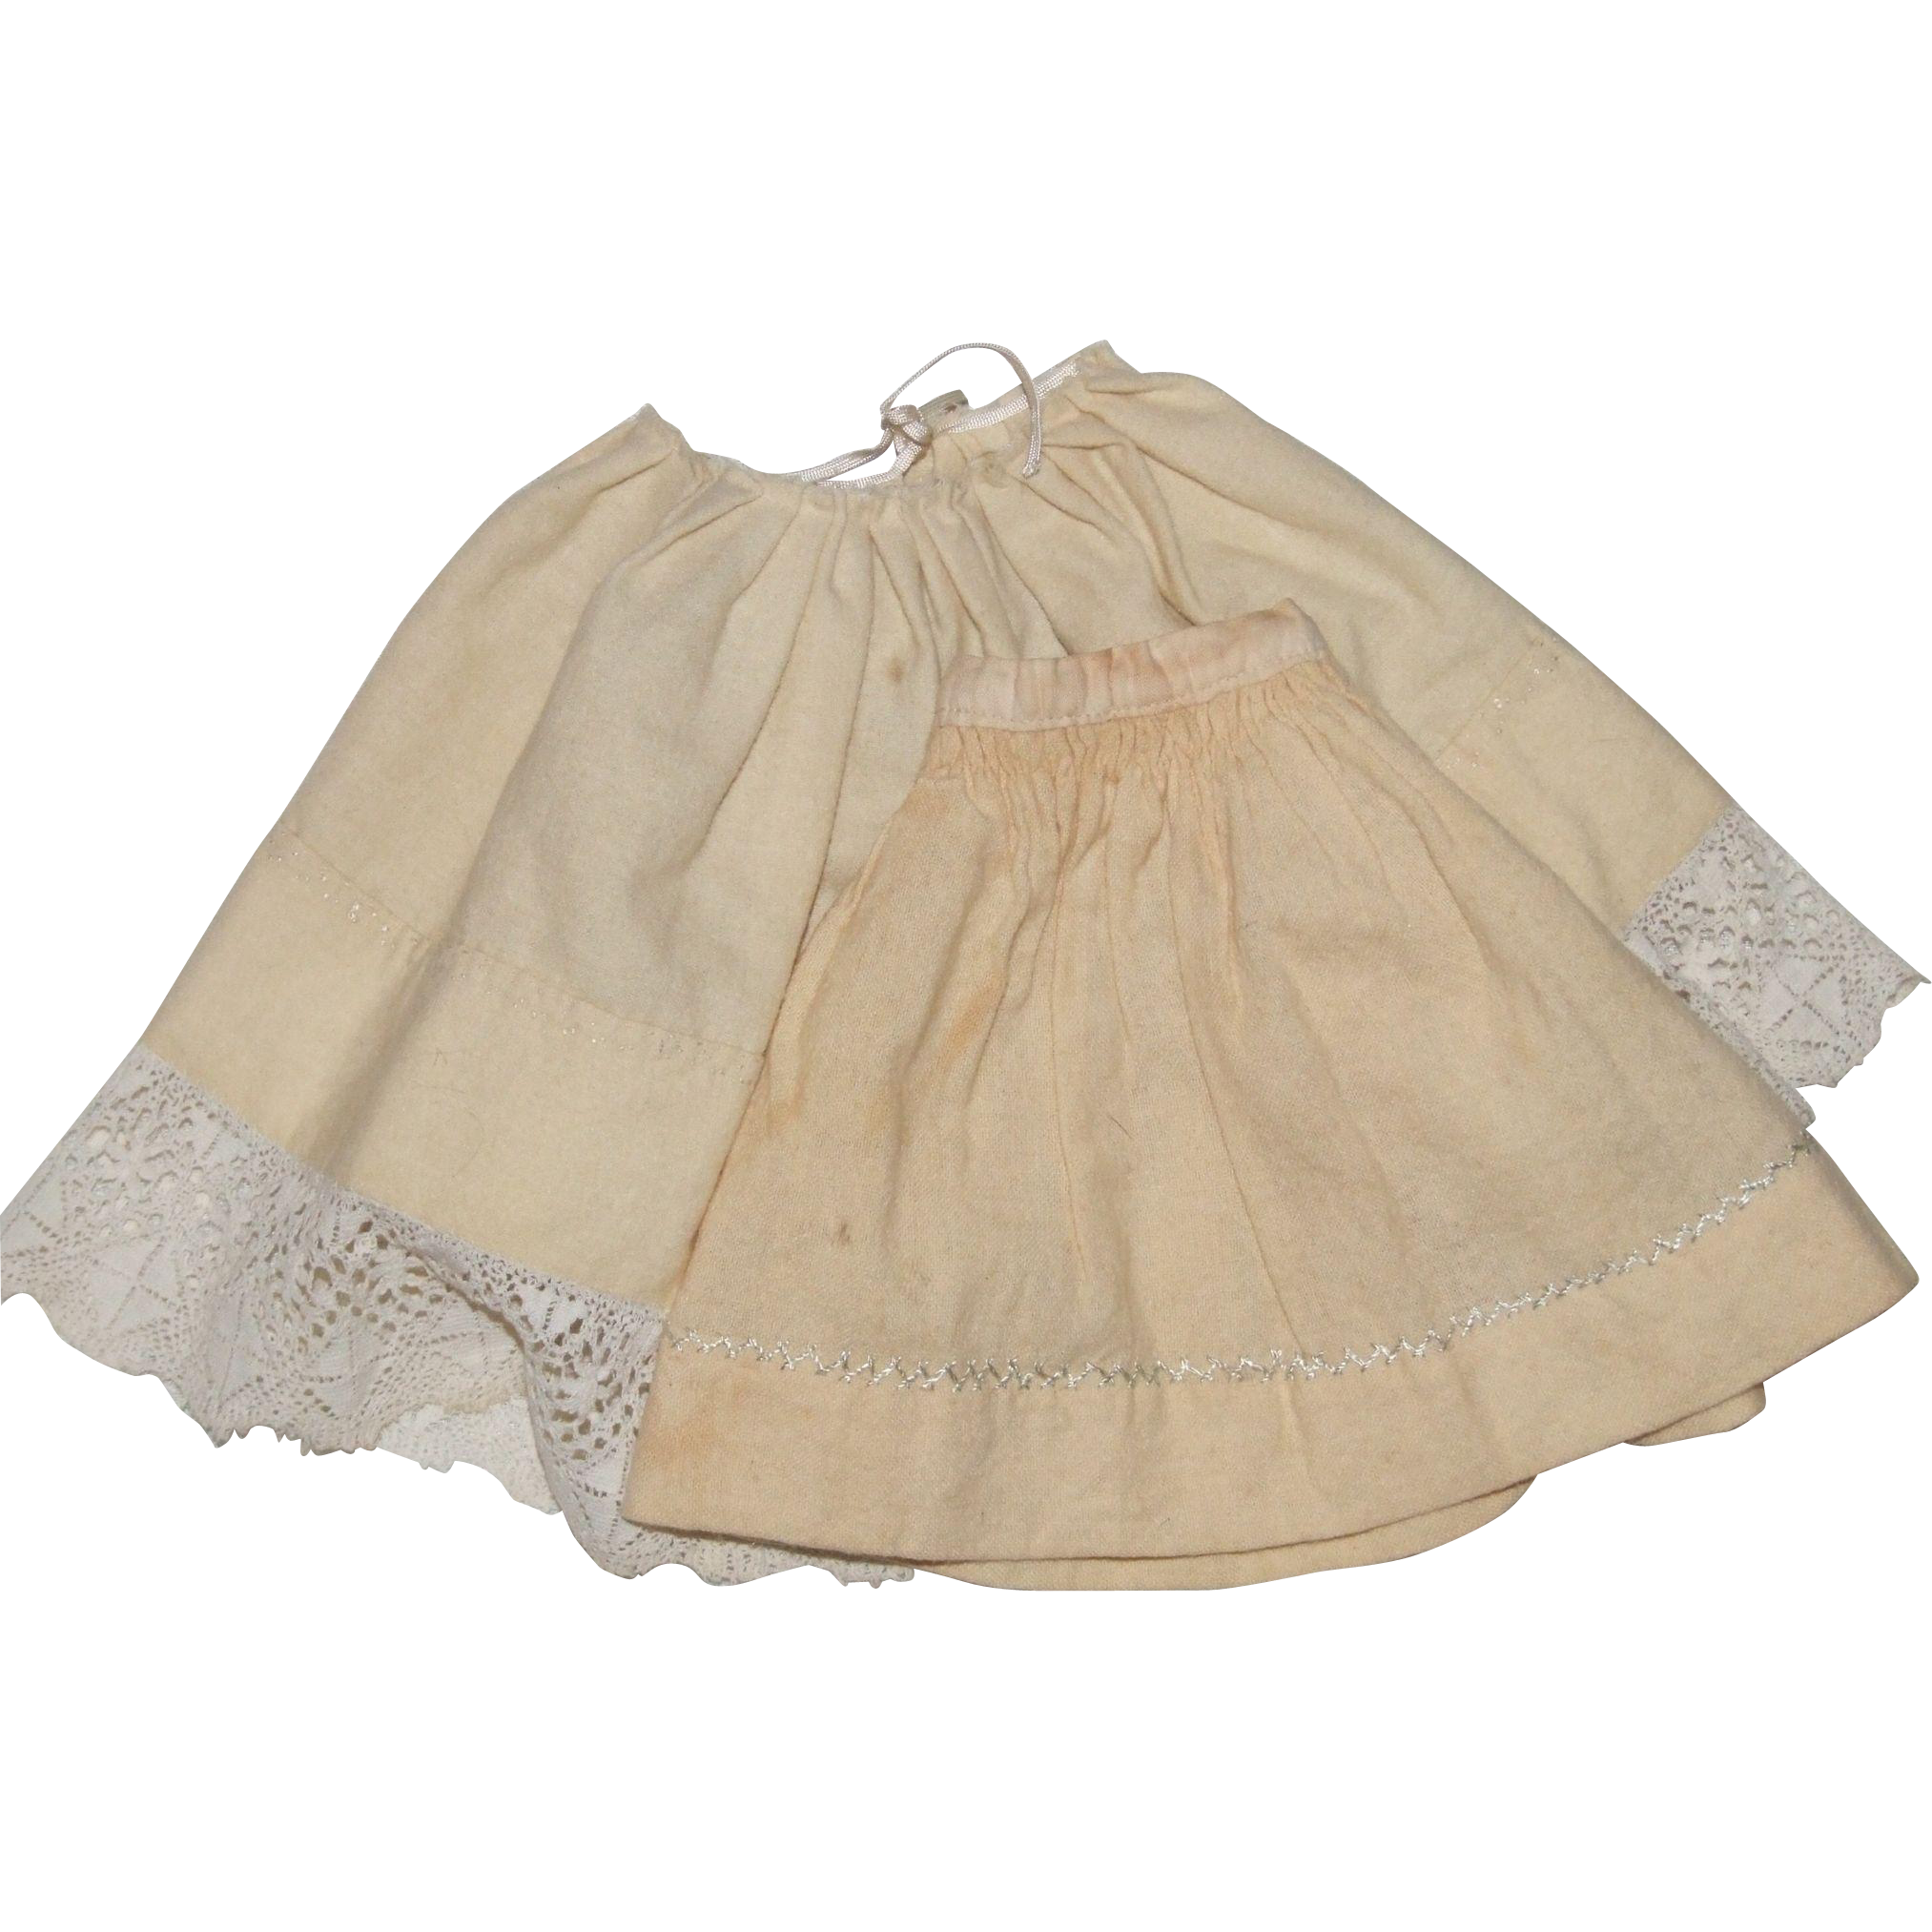 2 Antique petticoats for dolls